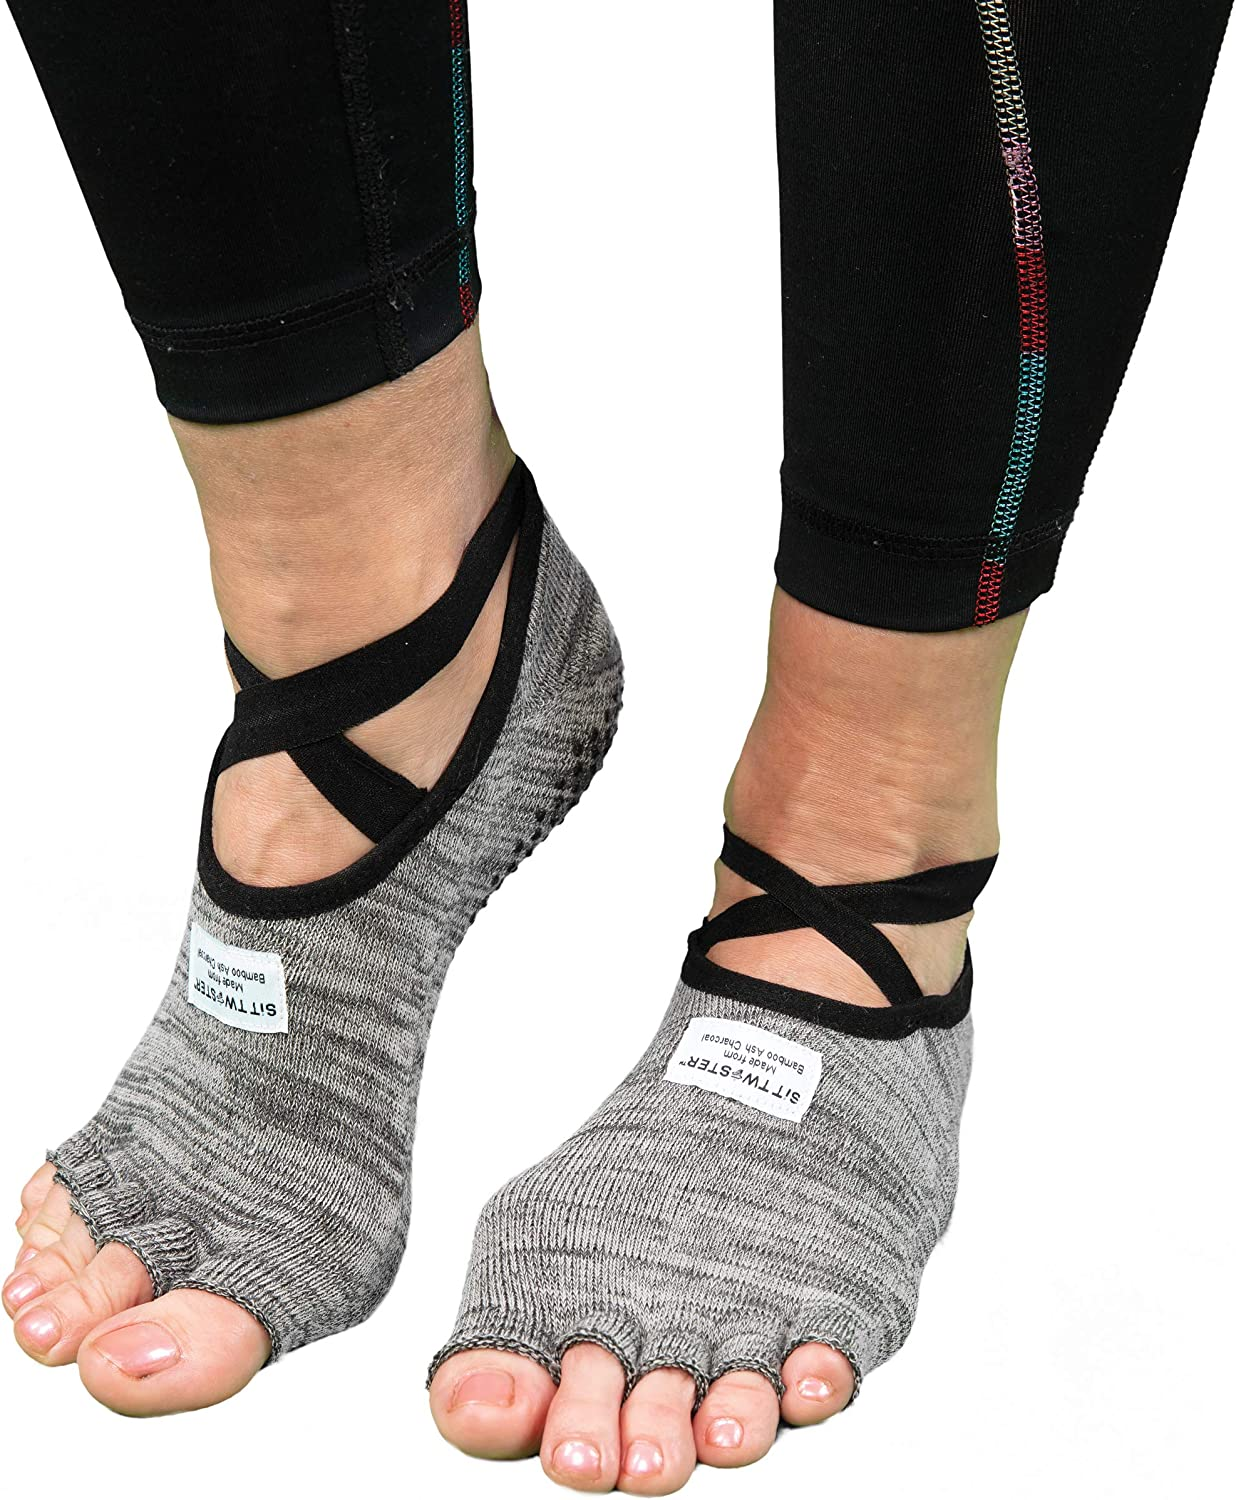 SIT TWISTER Exercise Socks - Performance Sport Socks with Grips - Use for Yoga, Pilates, Working Out & More - Made with All-Natural Hygenic Bamboo Charcoal Powder (Cotton & Spandex, Grey)